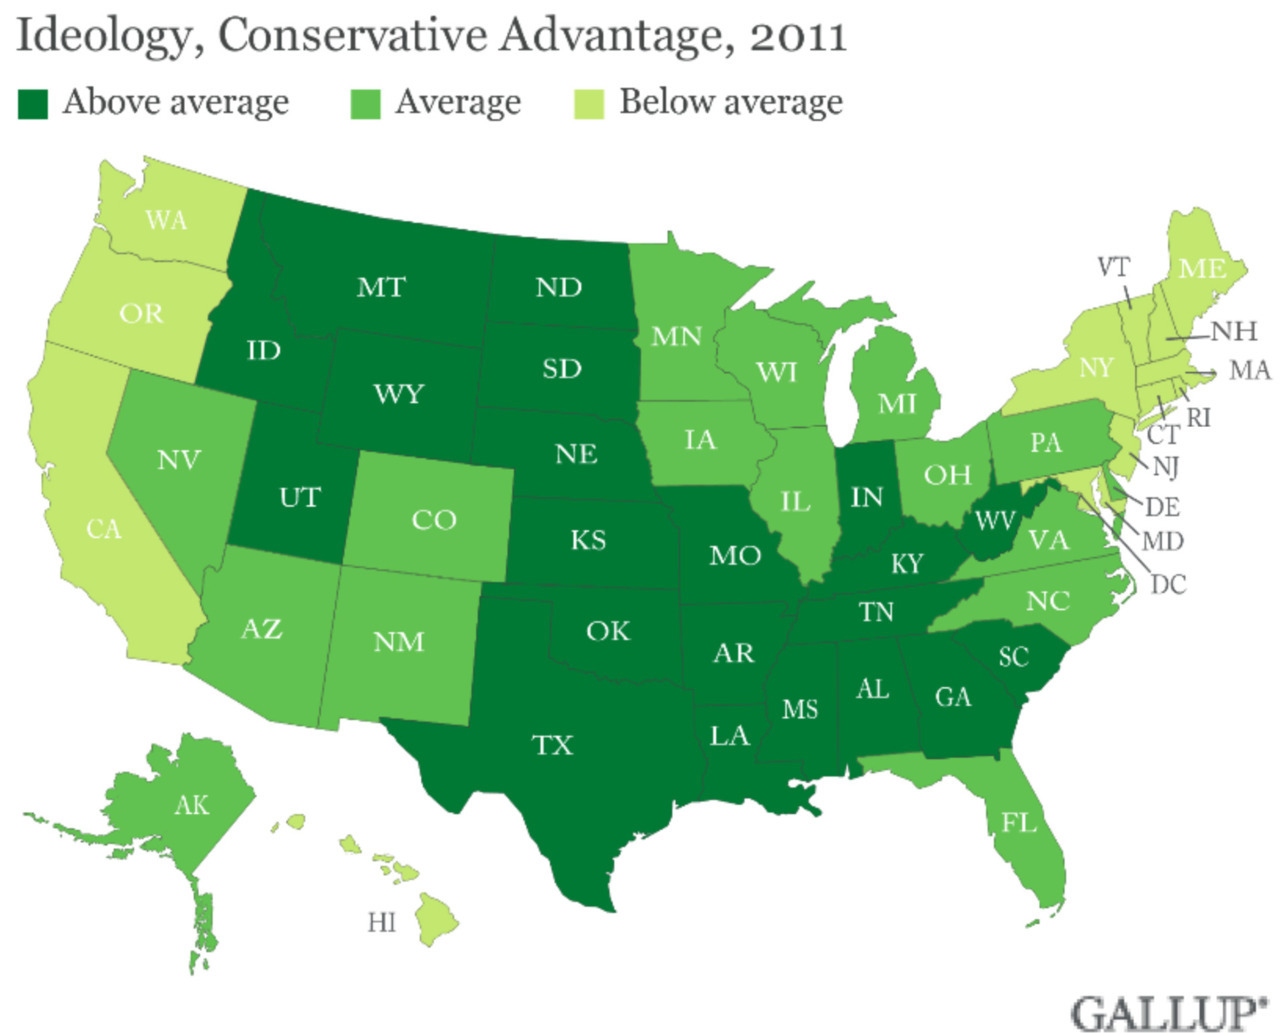 theatlantic:  Why America Keeps Getting More Conservative  The map above charts the ideological divide across America's states. There are four states where conservatives make up more than half the population: Mississippi, Utah, Wyoming, and Alabama. Conservatives make up more than 40 percent in 20 more states. Liberals now outnumber conservatives in just one state, Massachusetts, and the District of Columbia. The ongoing economic crisis appears to have deepened that conservative drift, which is most pronounced in its least well off, least educated, most blue collar, most economically hard-hit states. Read more. [Image: Gallup]